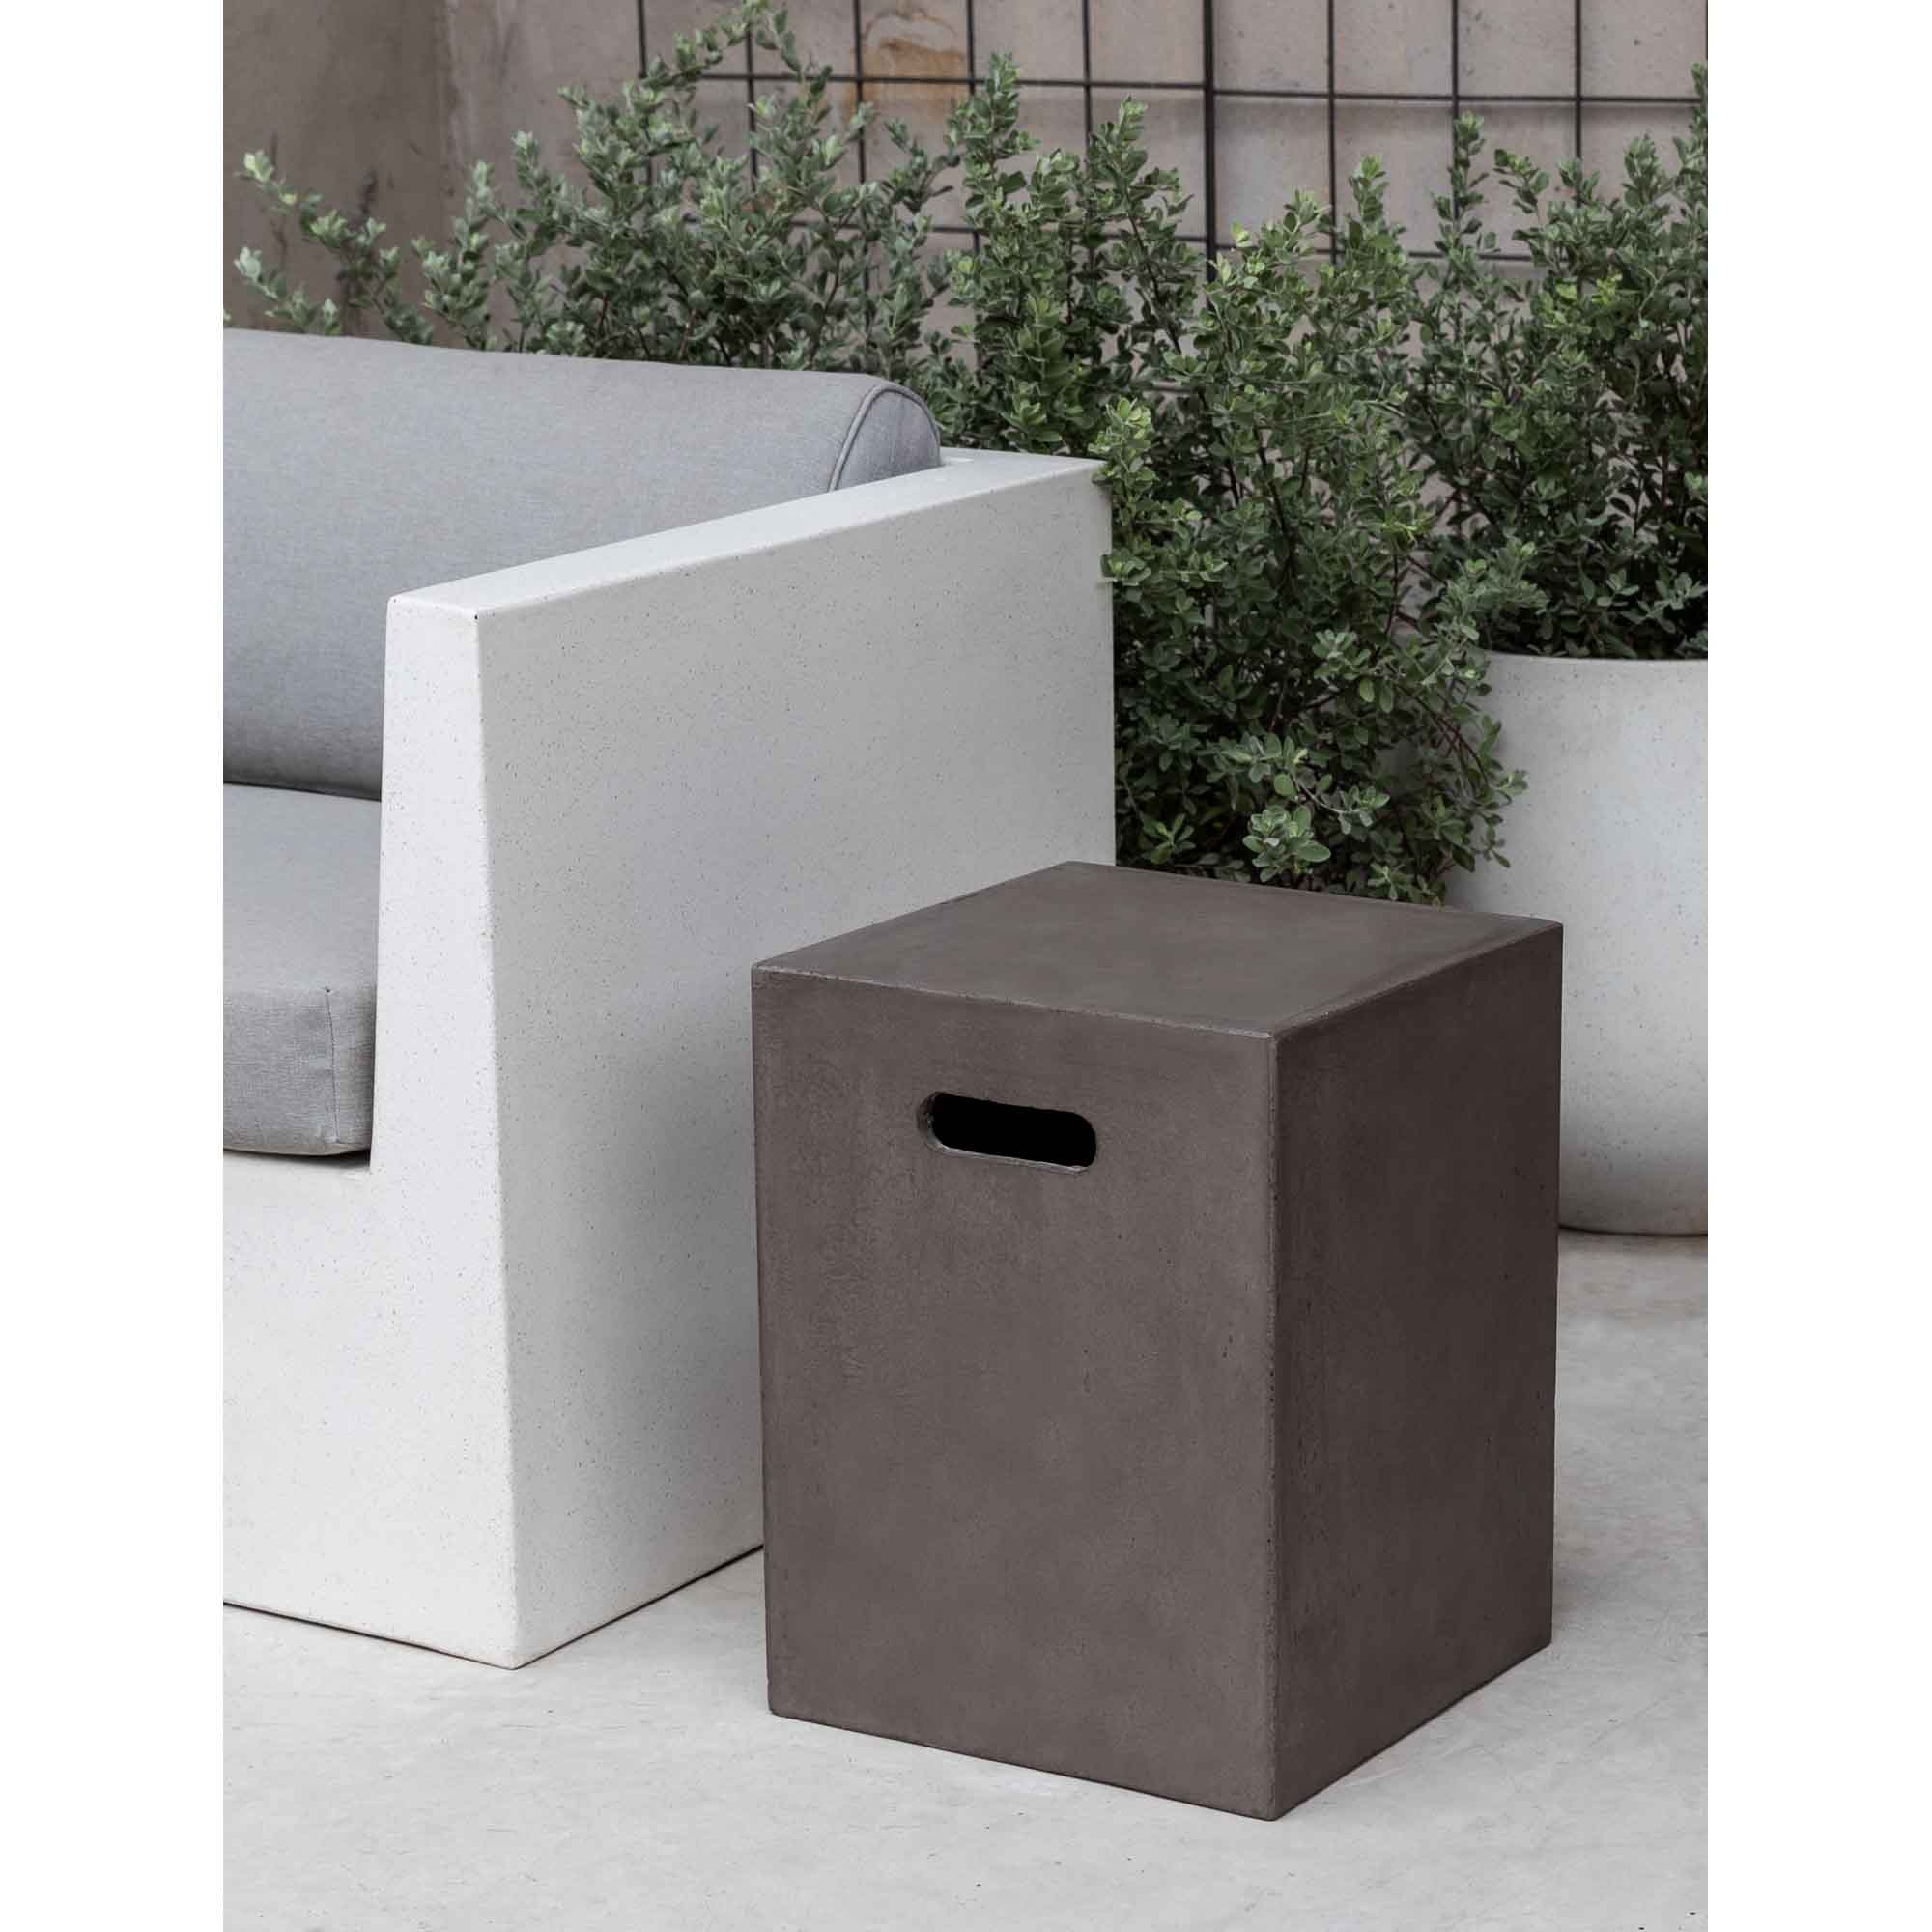 Urban Garden Table-Fiber Cement-S/1